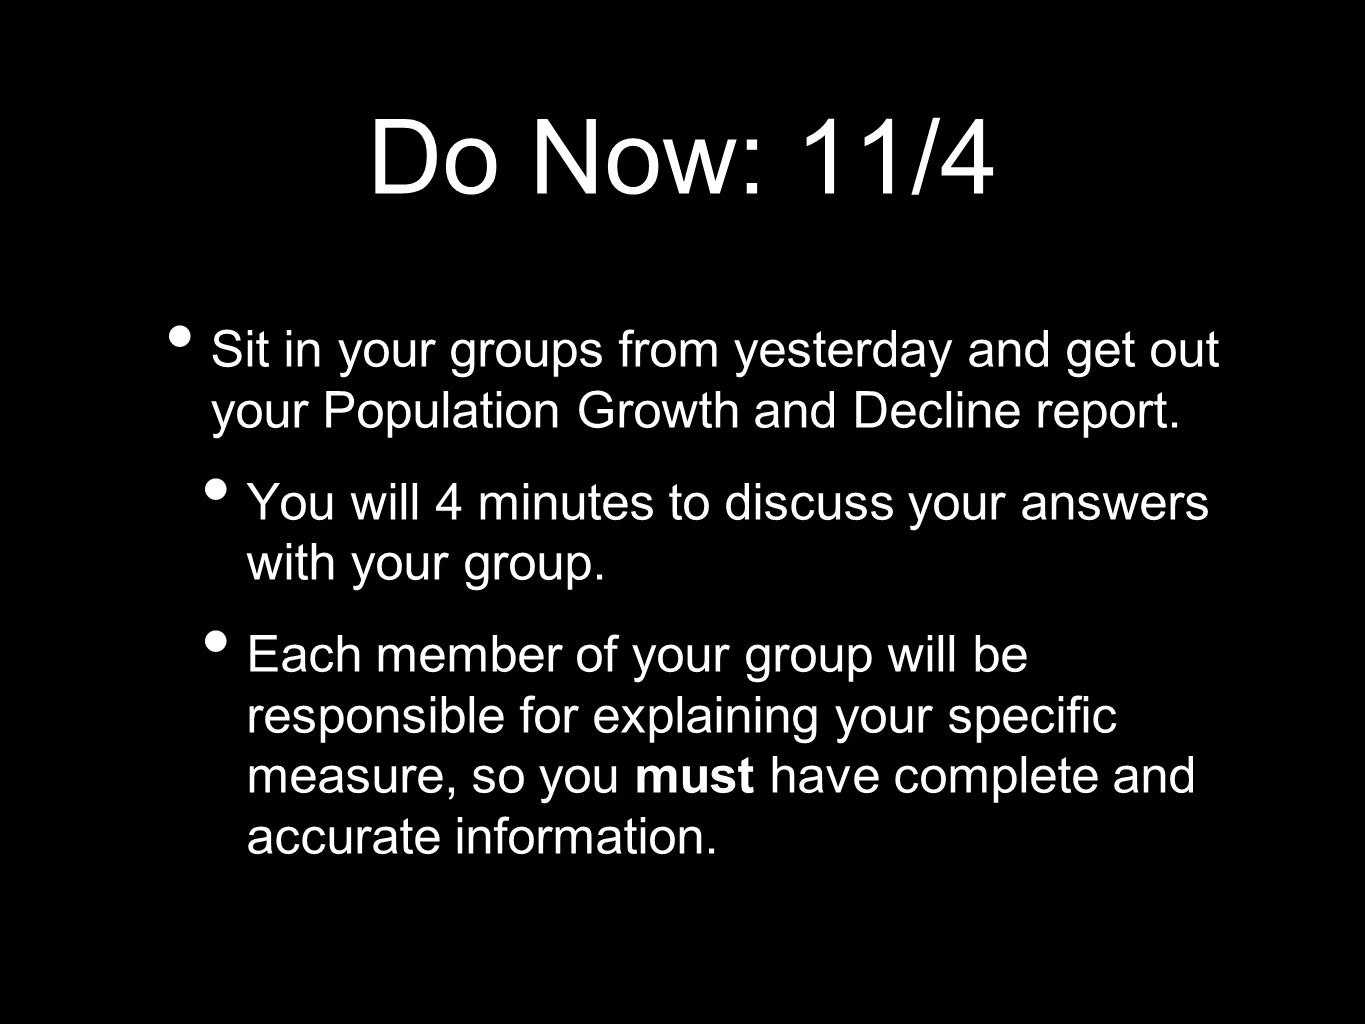 Do Now: 11/4 Sit in your groups from yesterday and get out your Population Growth and Decline report.